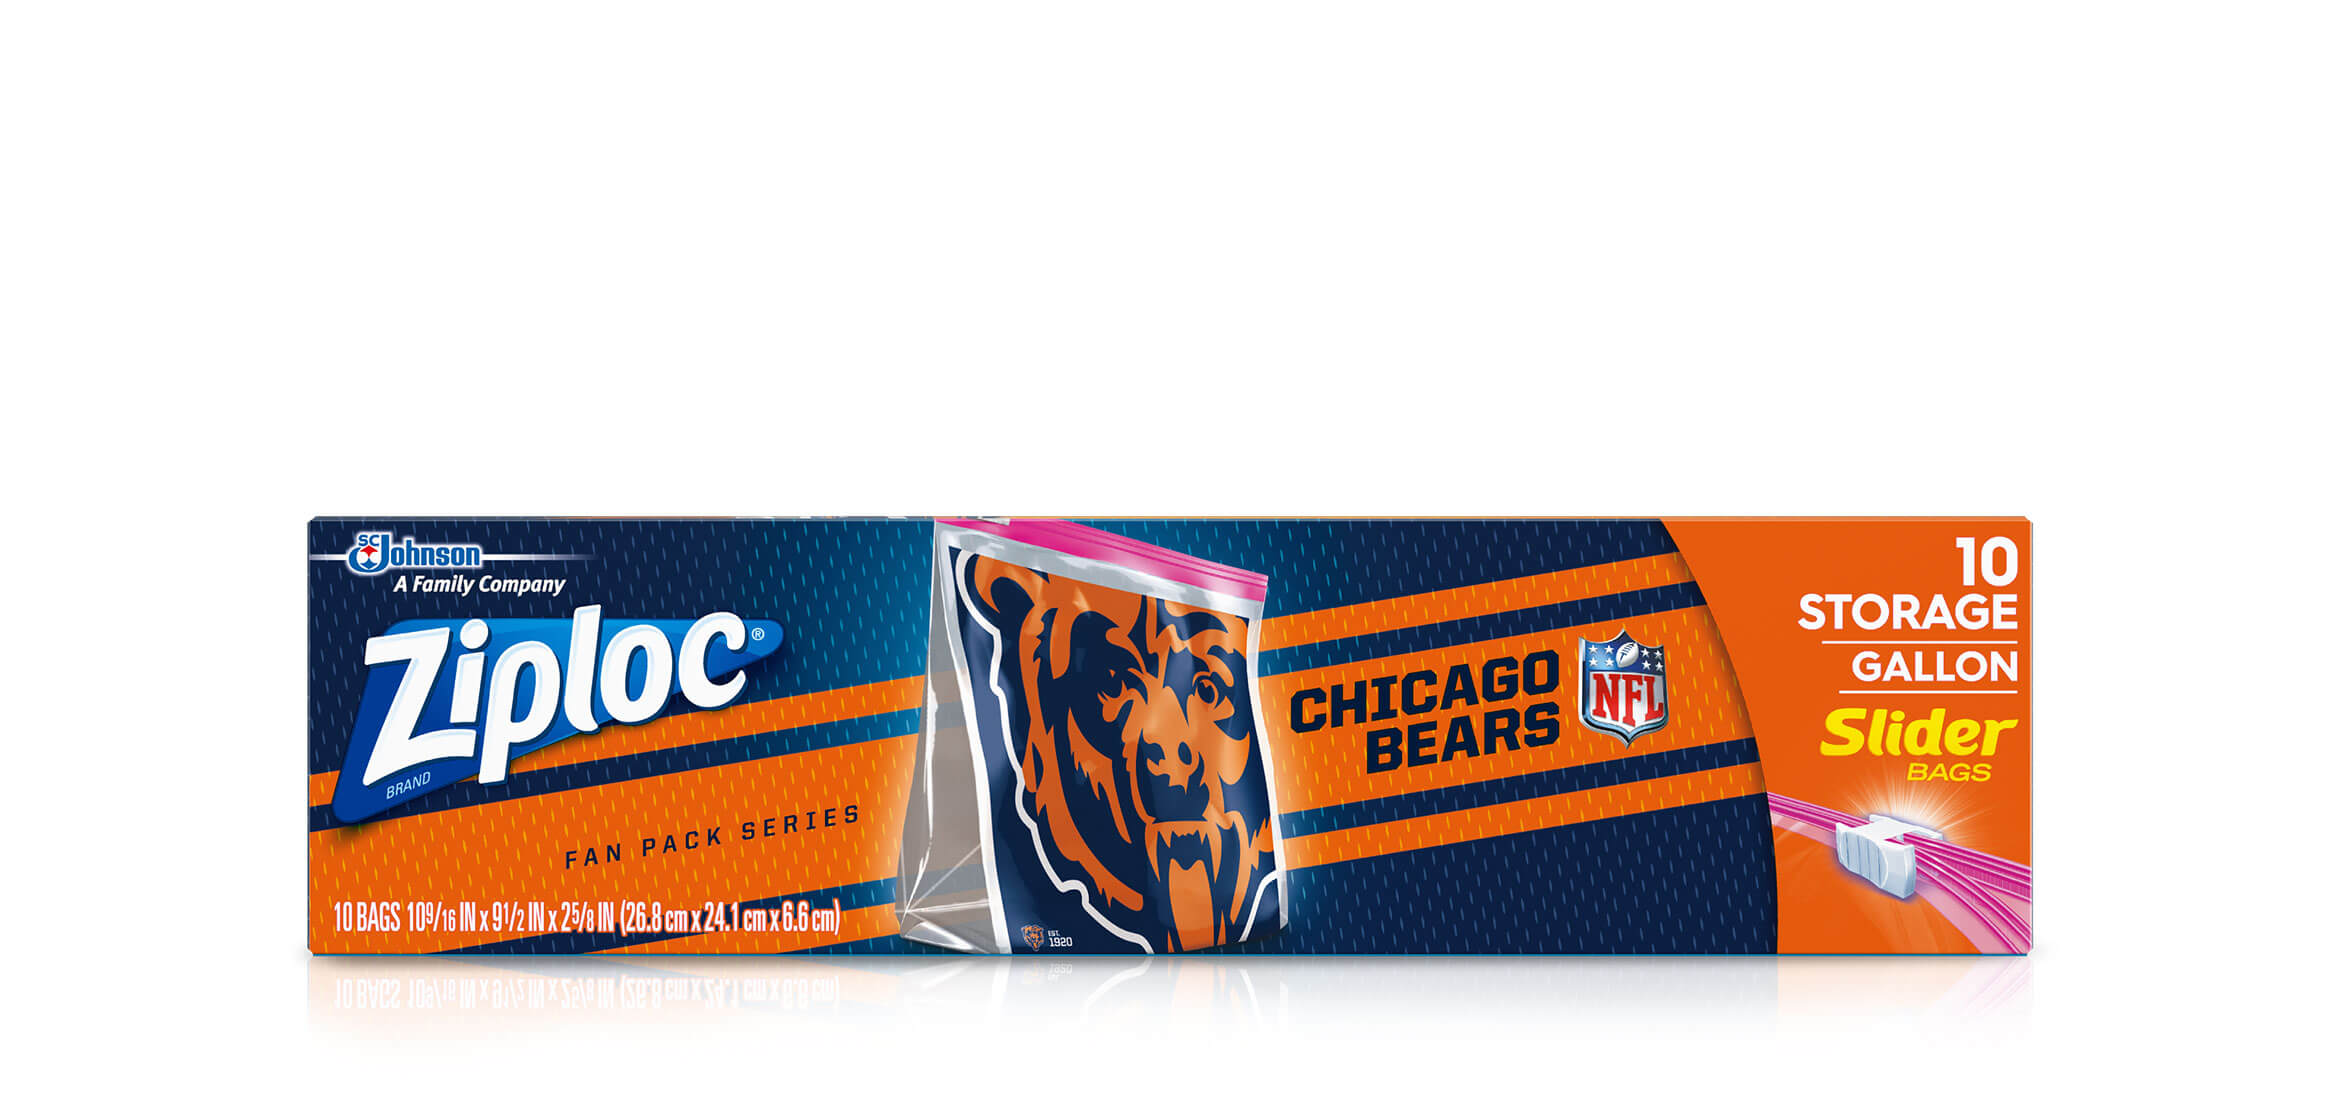 Chicago-Bears-Slider-Storage-Gallon-Hero-2X